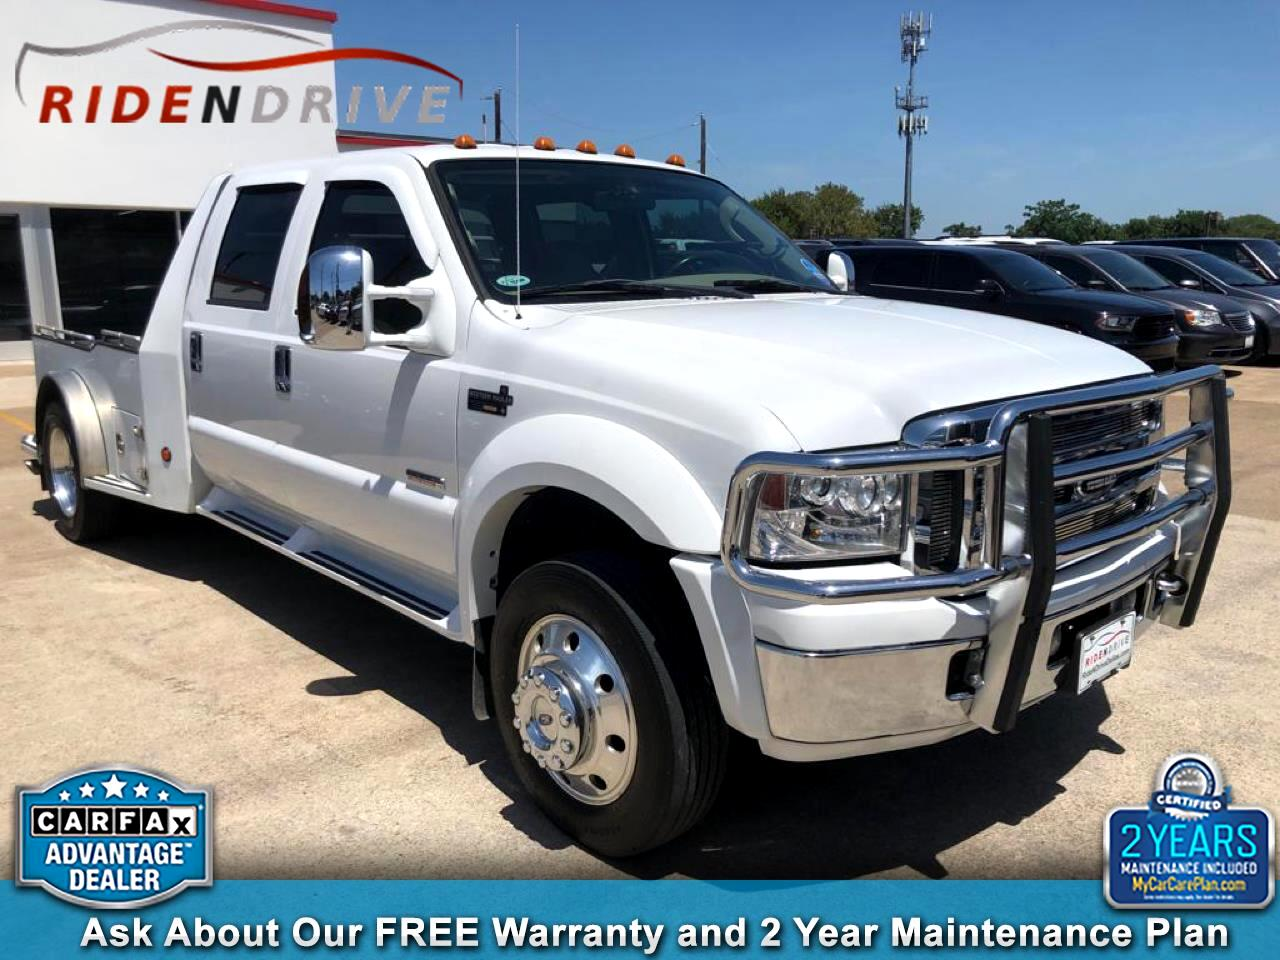 2006 Ford Super Duty F-450 DRW 2WD Crew Cab 172